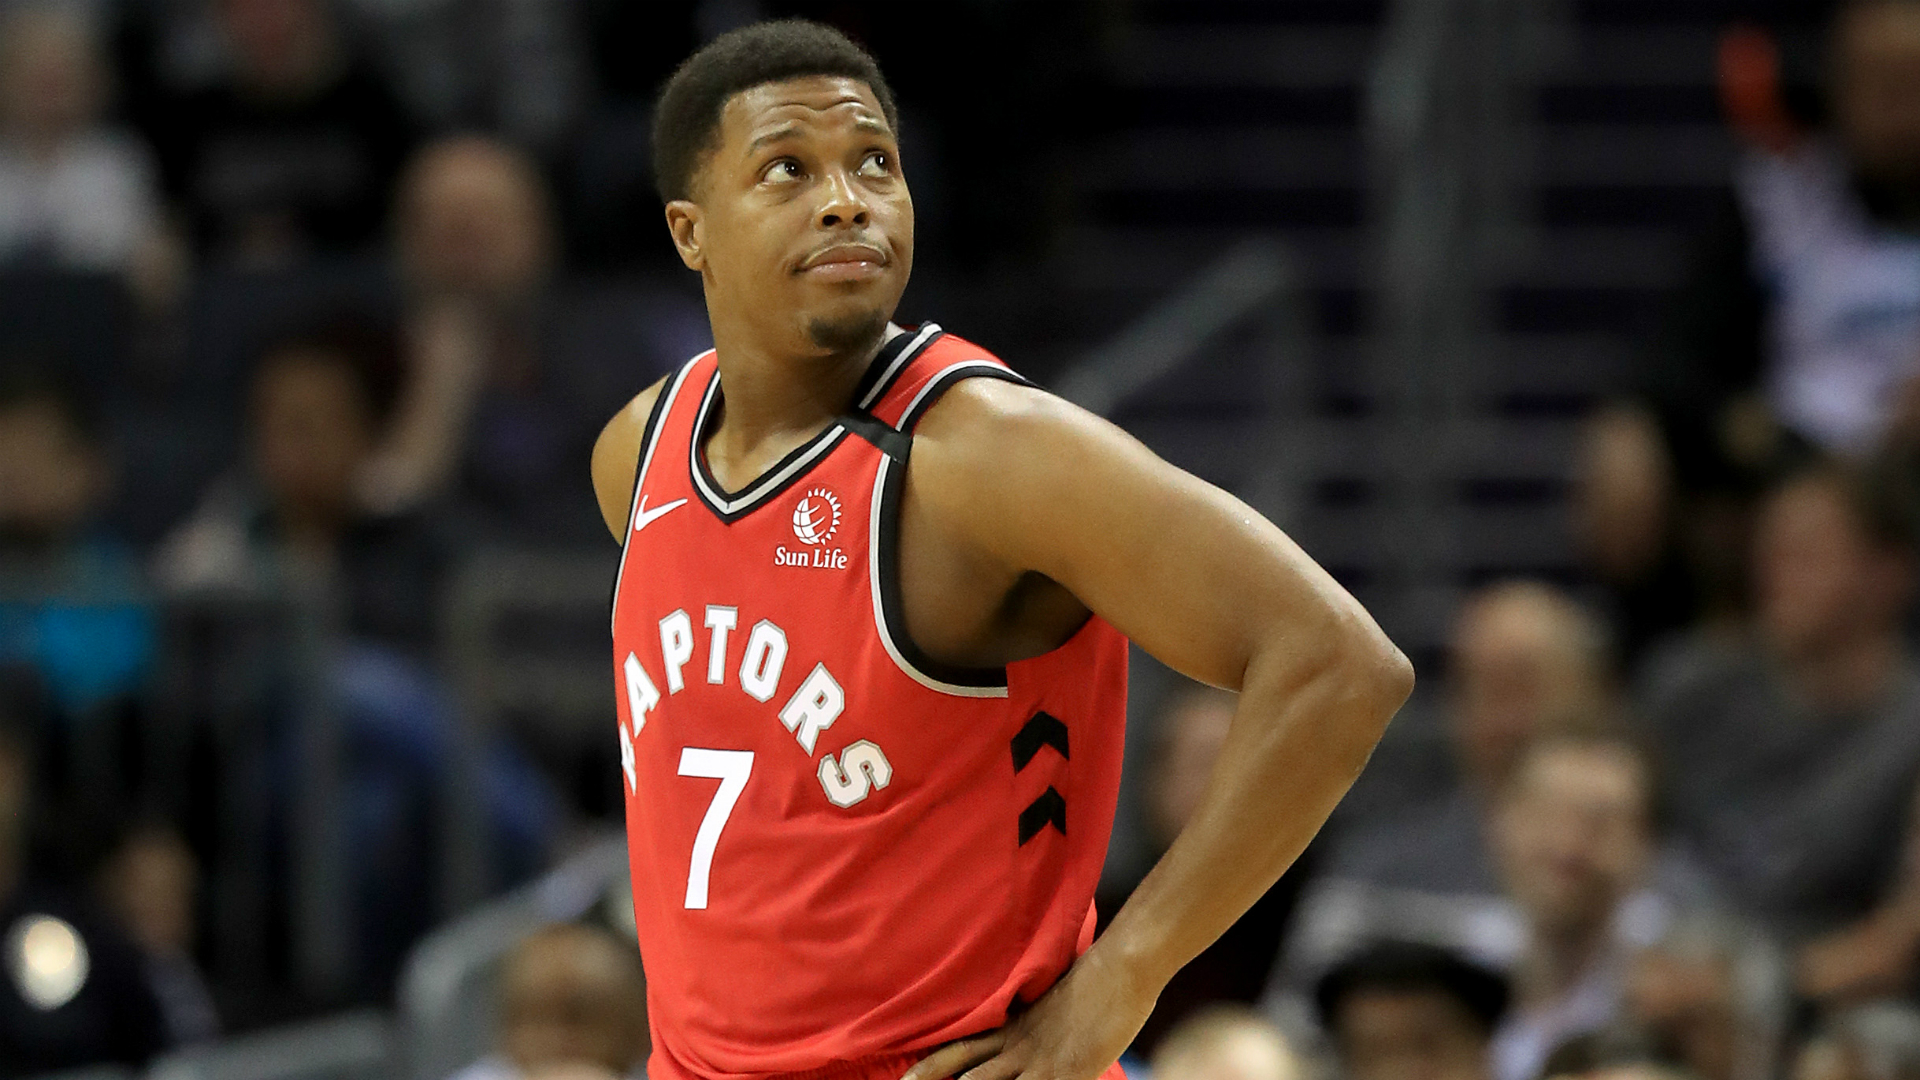 Raptors' winning streak snapped, Giannis-less Bucks fall as LeBron stars